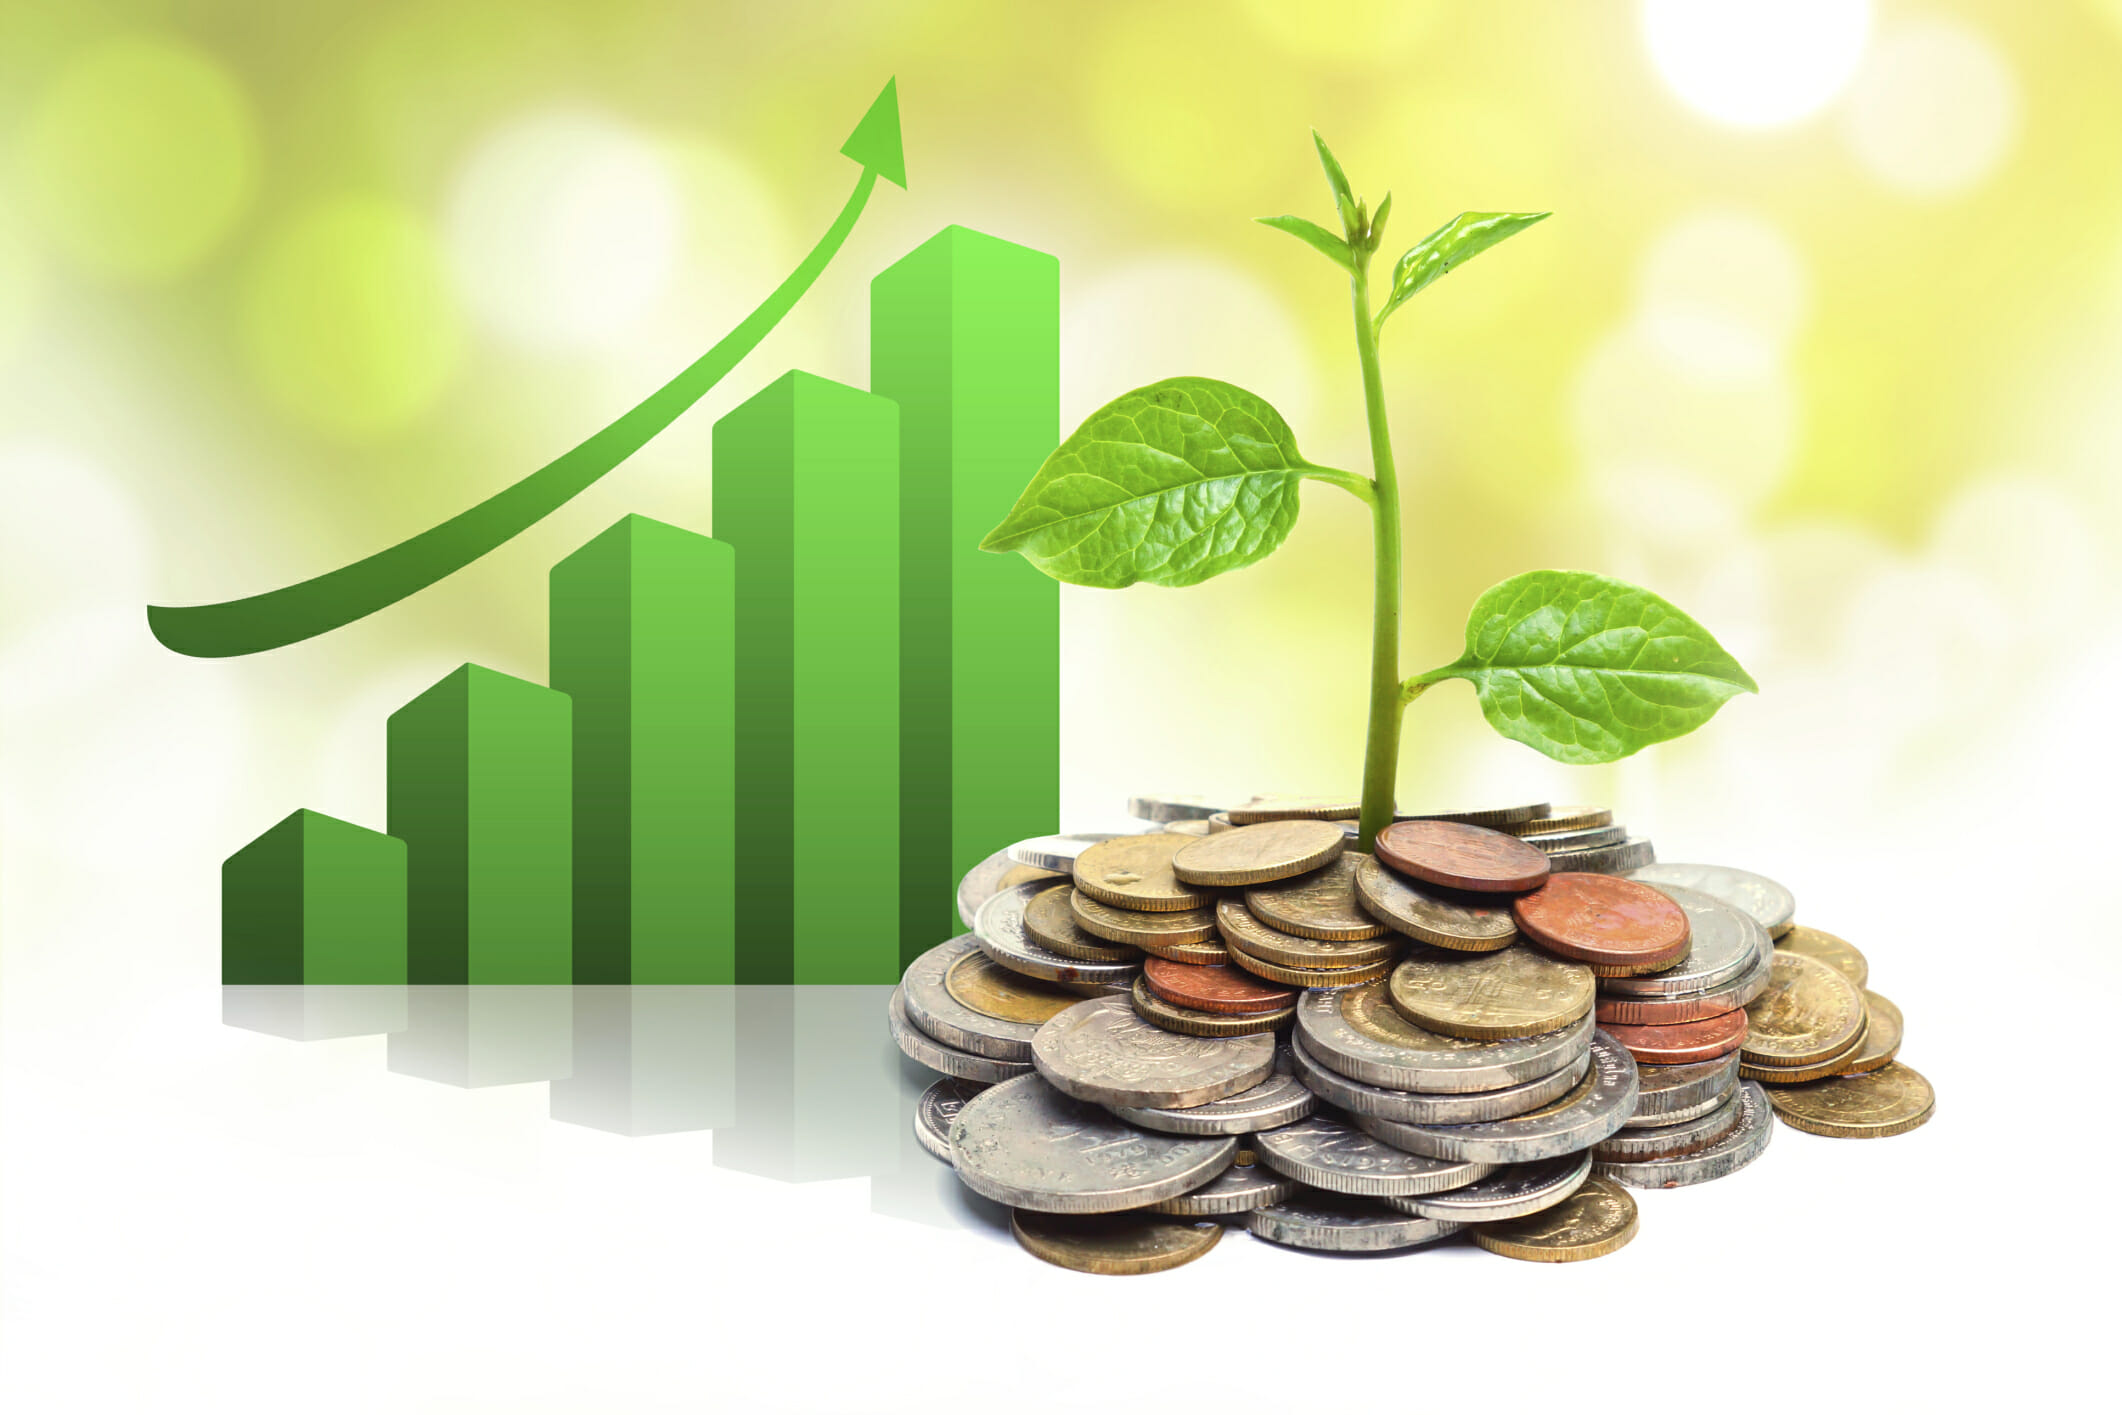 tress growing on coins with green graph